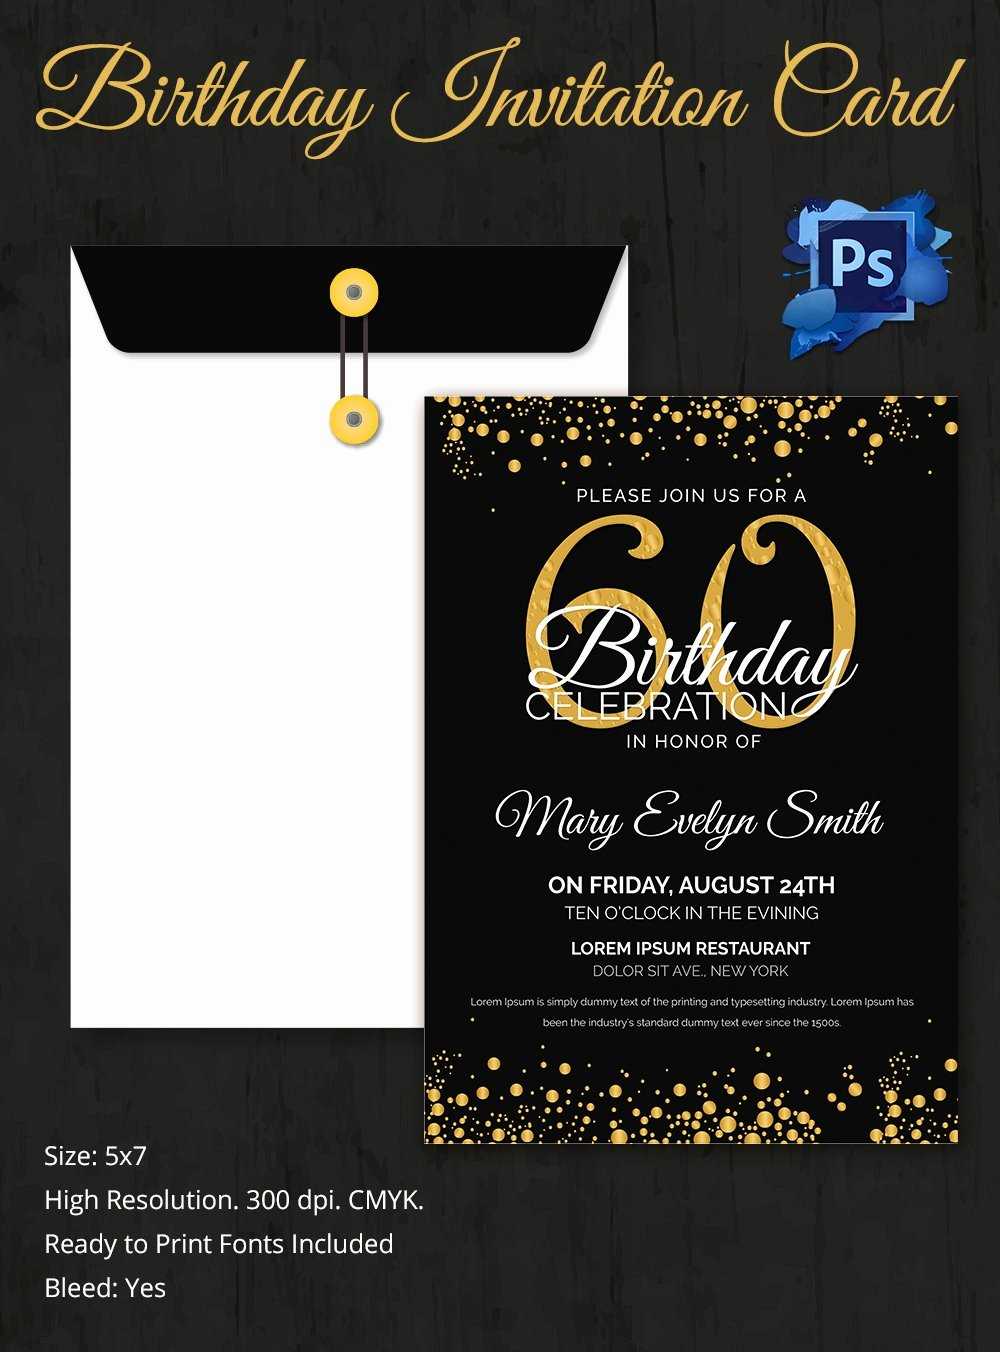 Birthday Invitation Template Word Elegant Birthday Invitation Template 32 Free Word Pdf Psd Ai